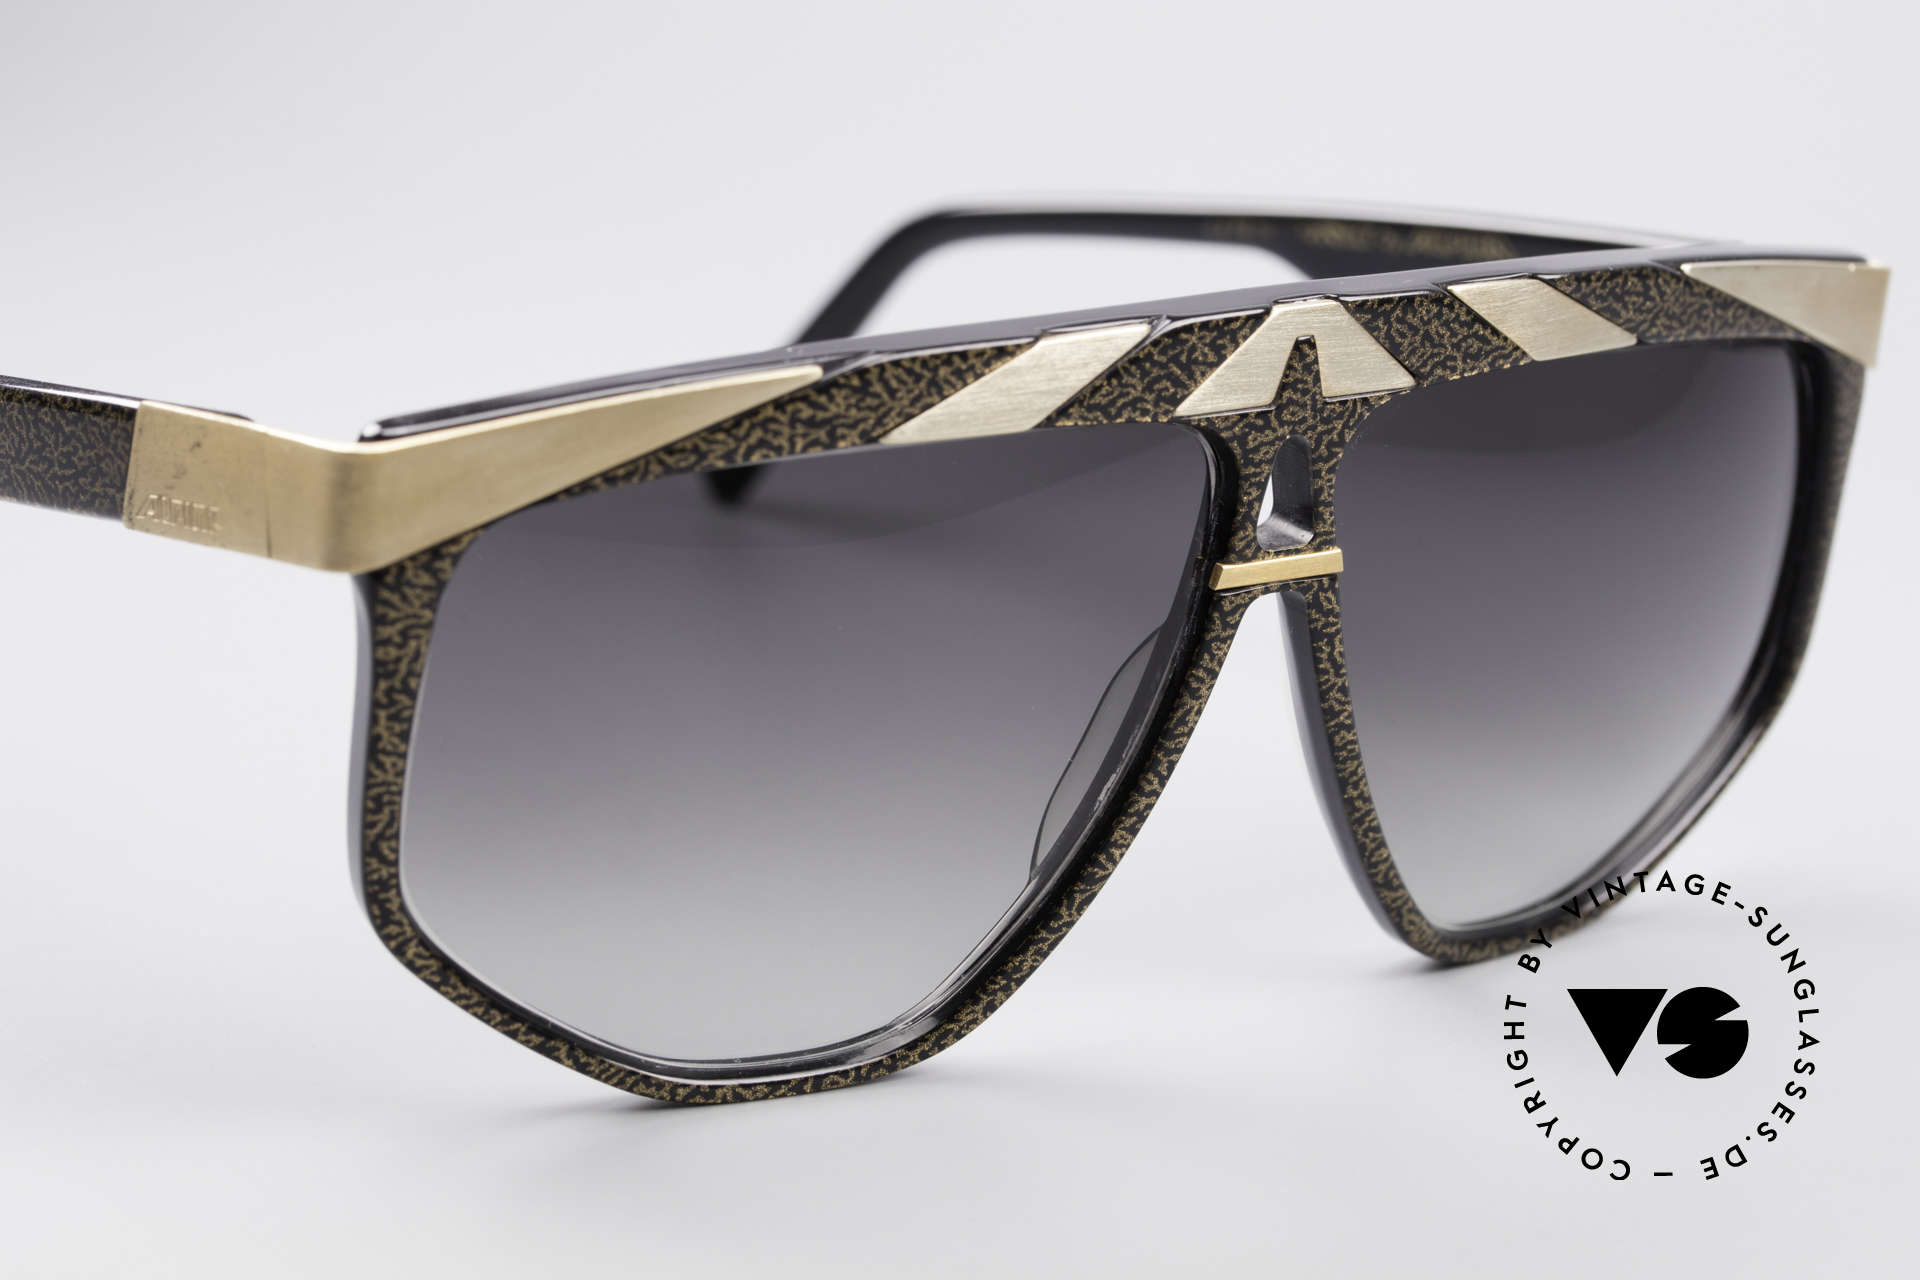 Alpina G82 No Retro Sunglasses Old 80's, unworn (like all our rare vintage ALPINA sunglasses), Made for Men and Women